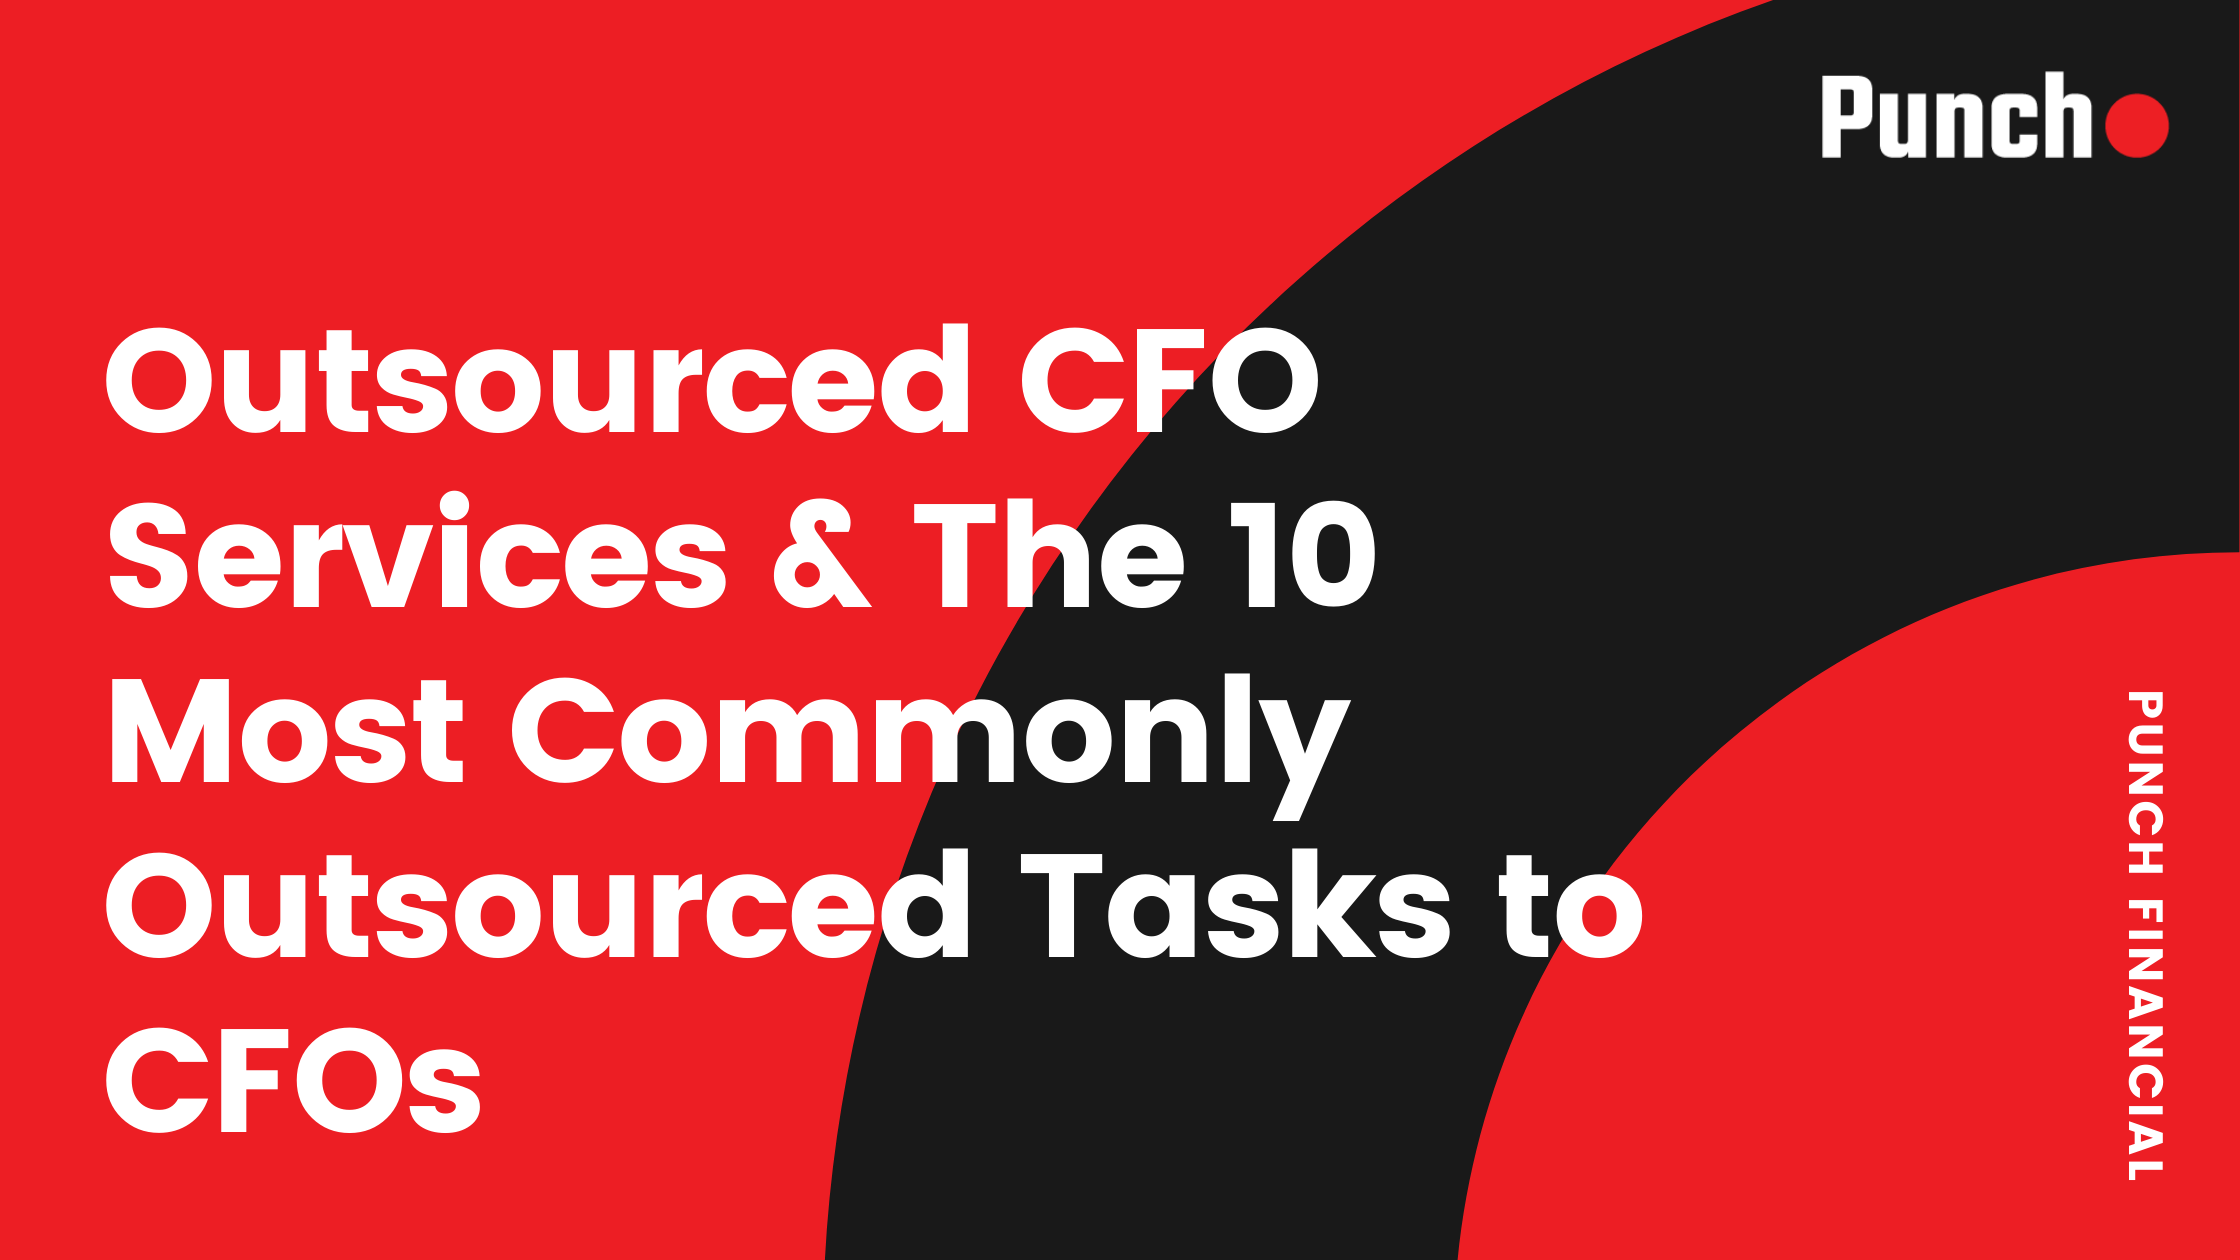 Outsourced CFO Services & The 10 Most Commonly Outsourced Tasks to CFOs